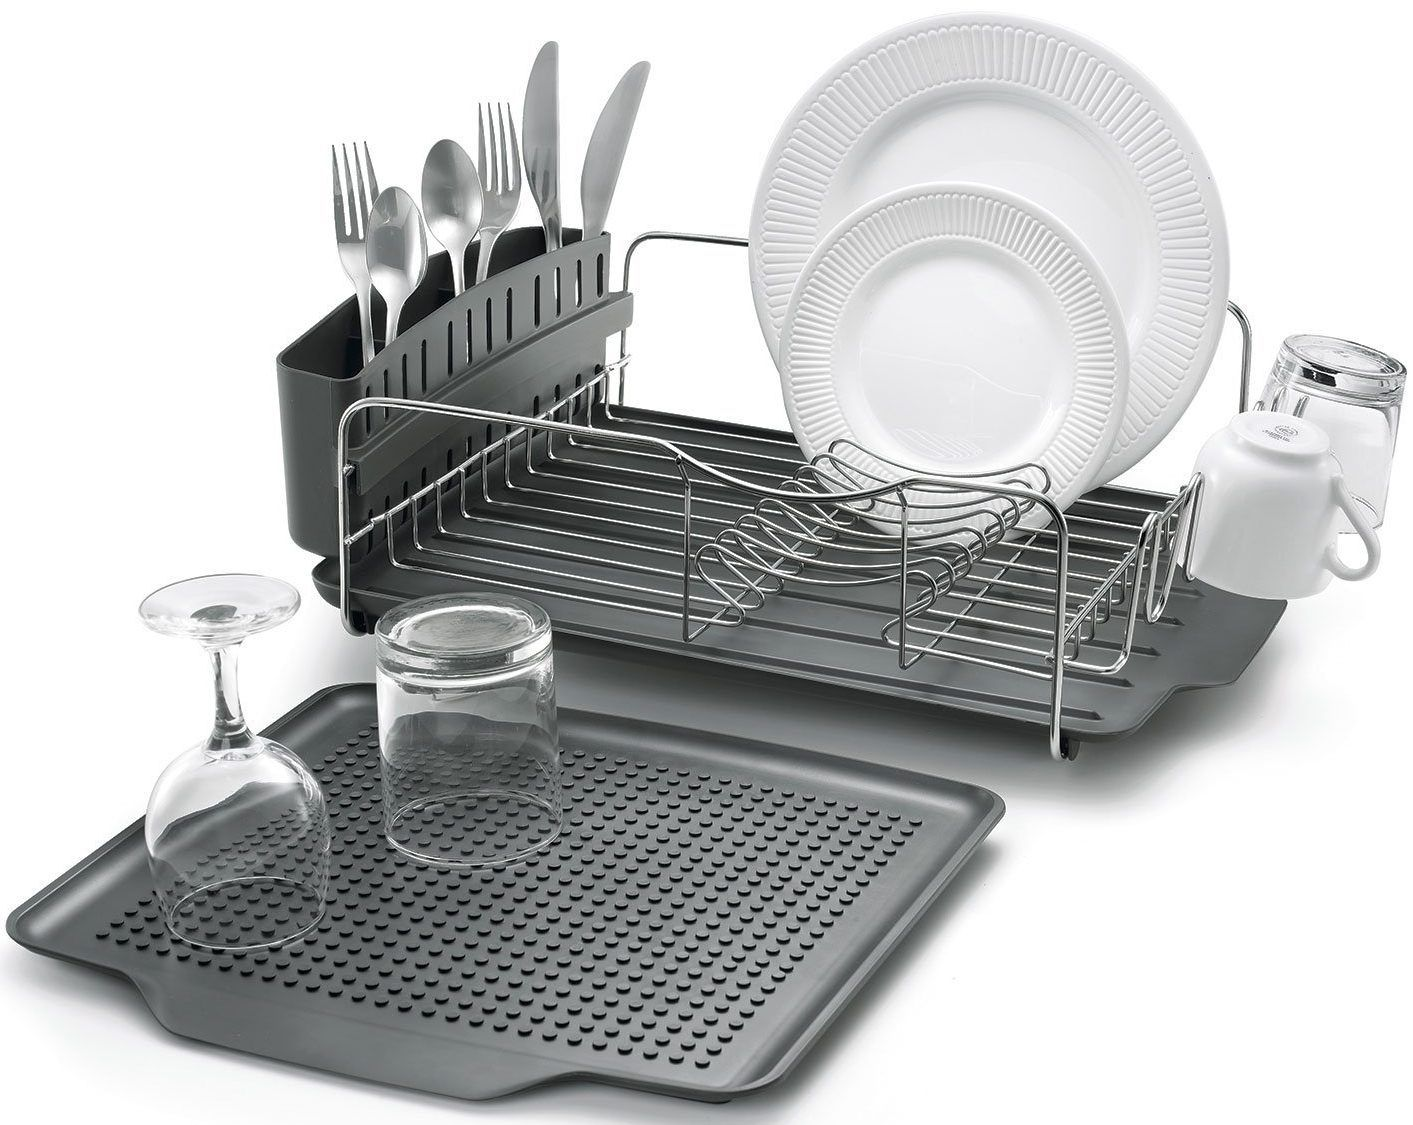 Top 10 Best Dish Drainers And Racks In 2020 Reviews With Images